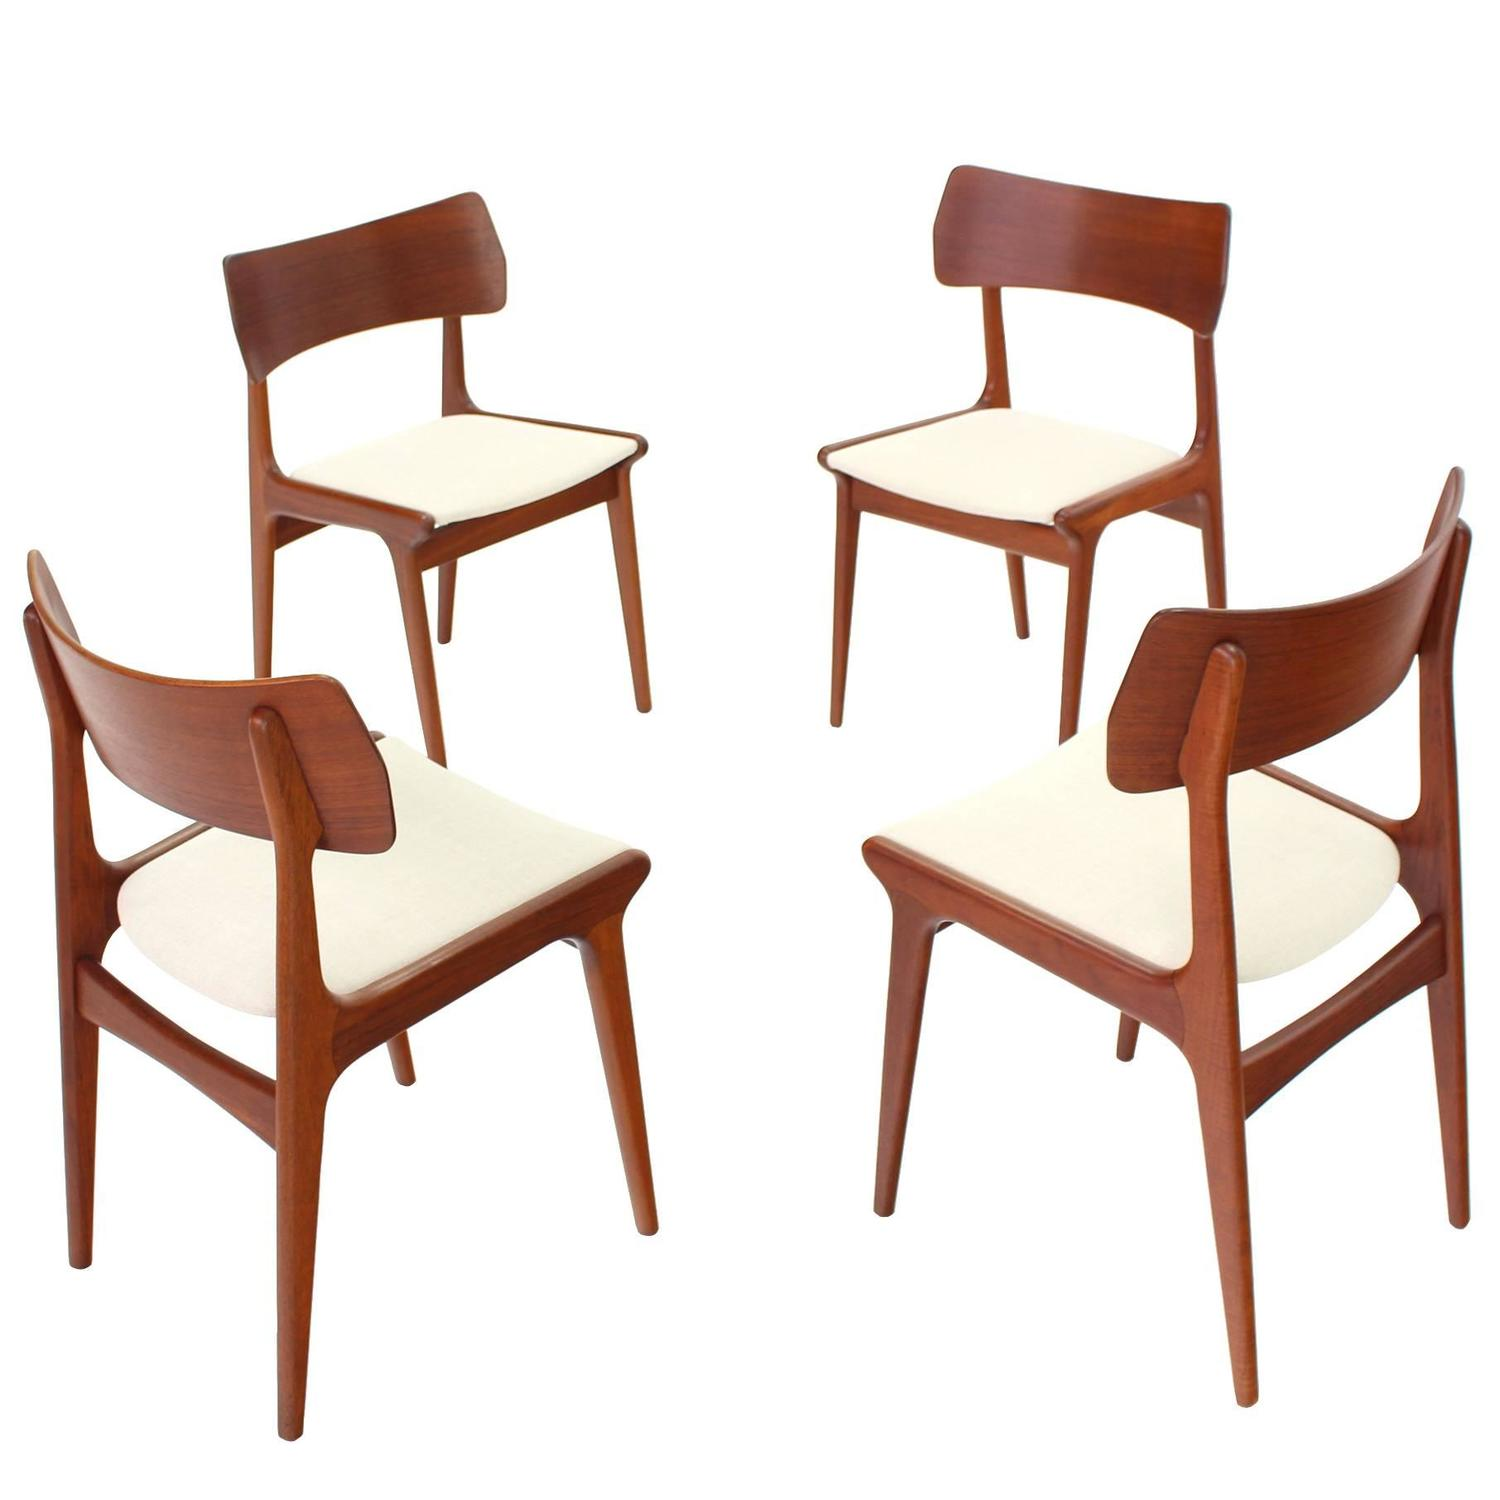 of four danish mid century modern dining chairs for sale at 1stdibs